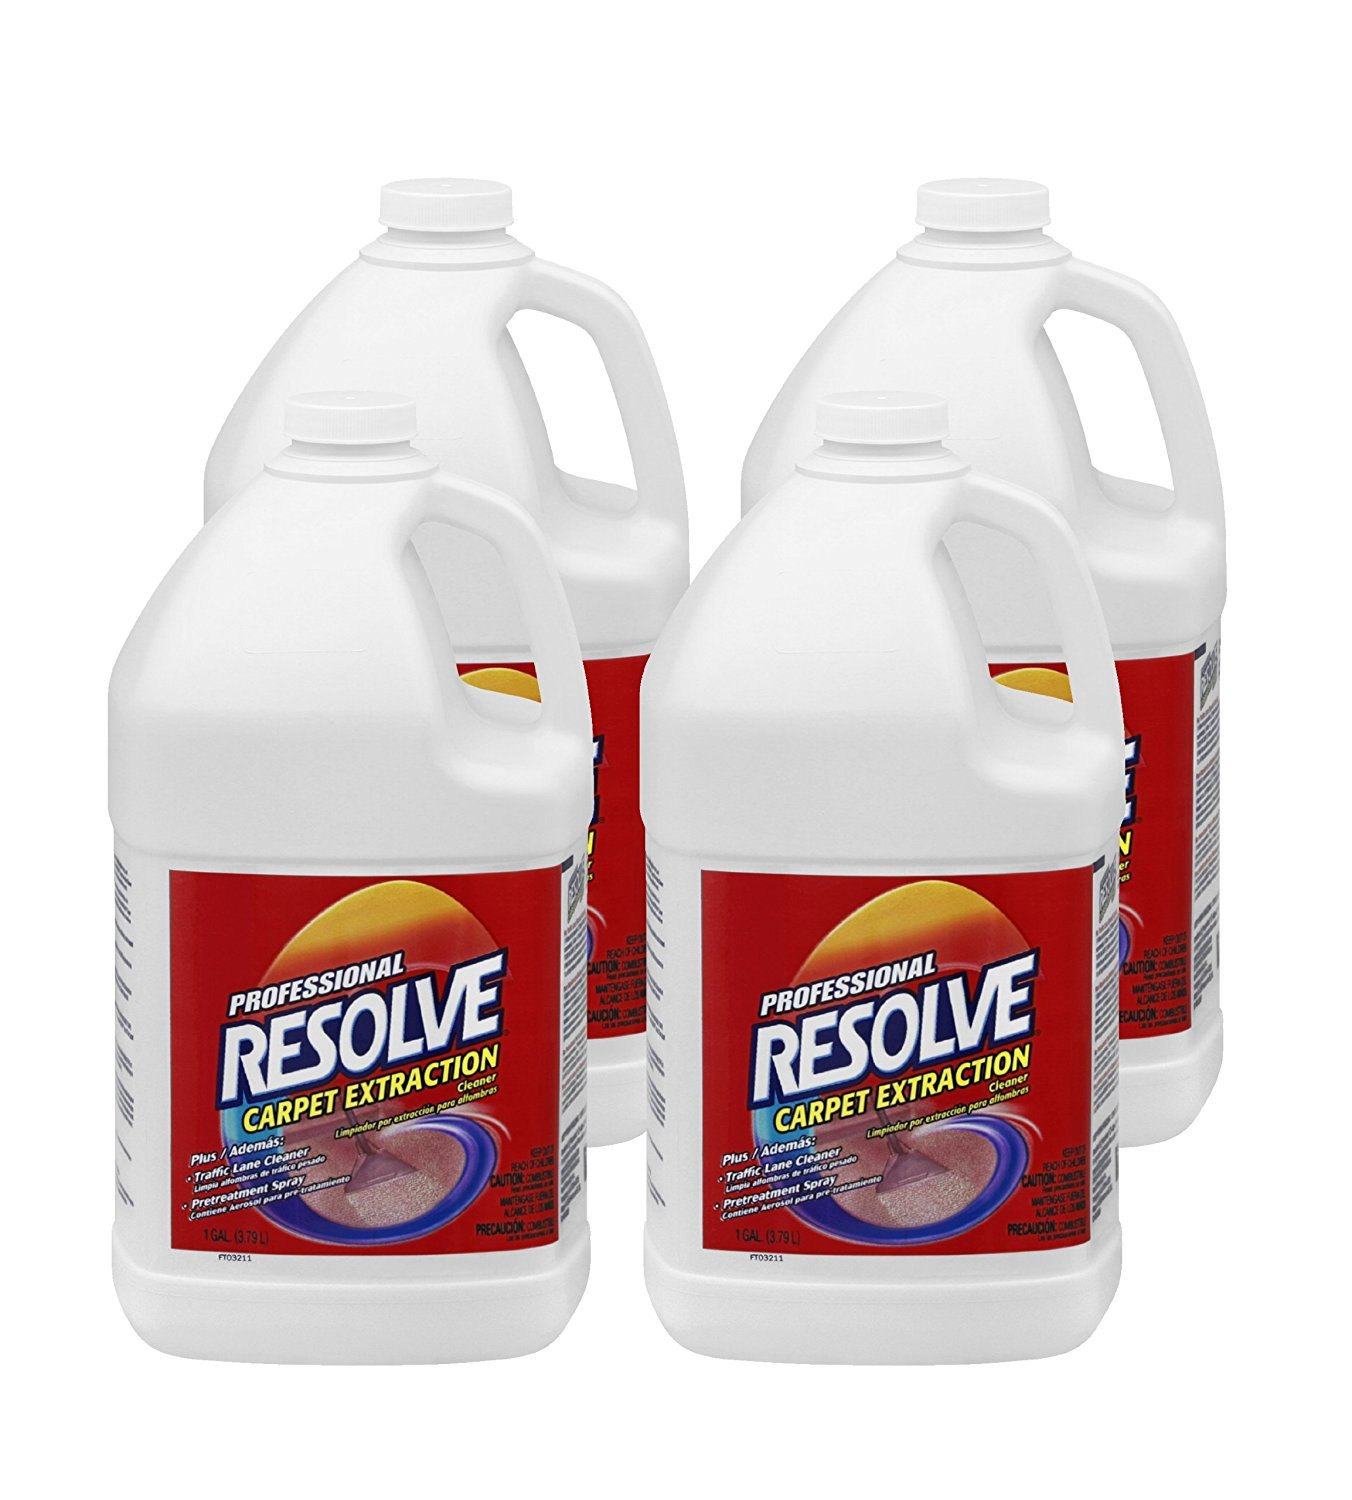 Professional RESOLVE Carpet Extraction Cleaner, 1 gal. Bottle - Includes four per case. by Professional RESOLVE